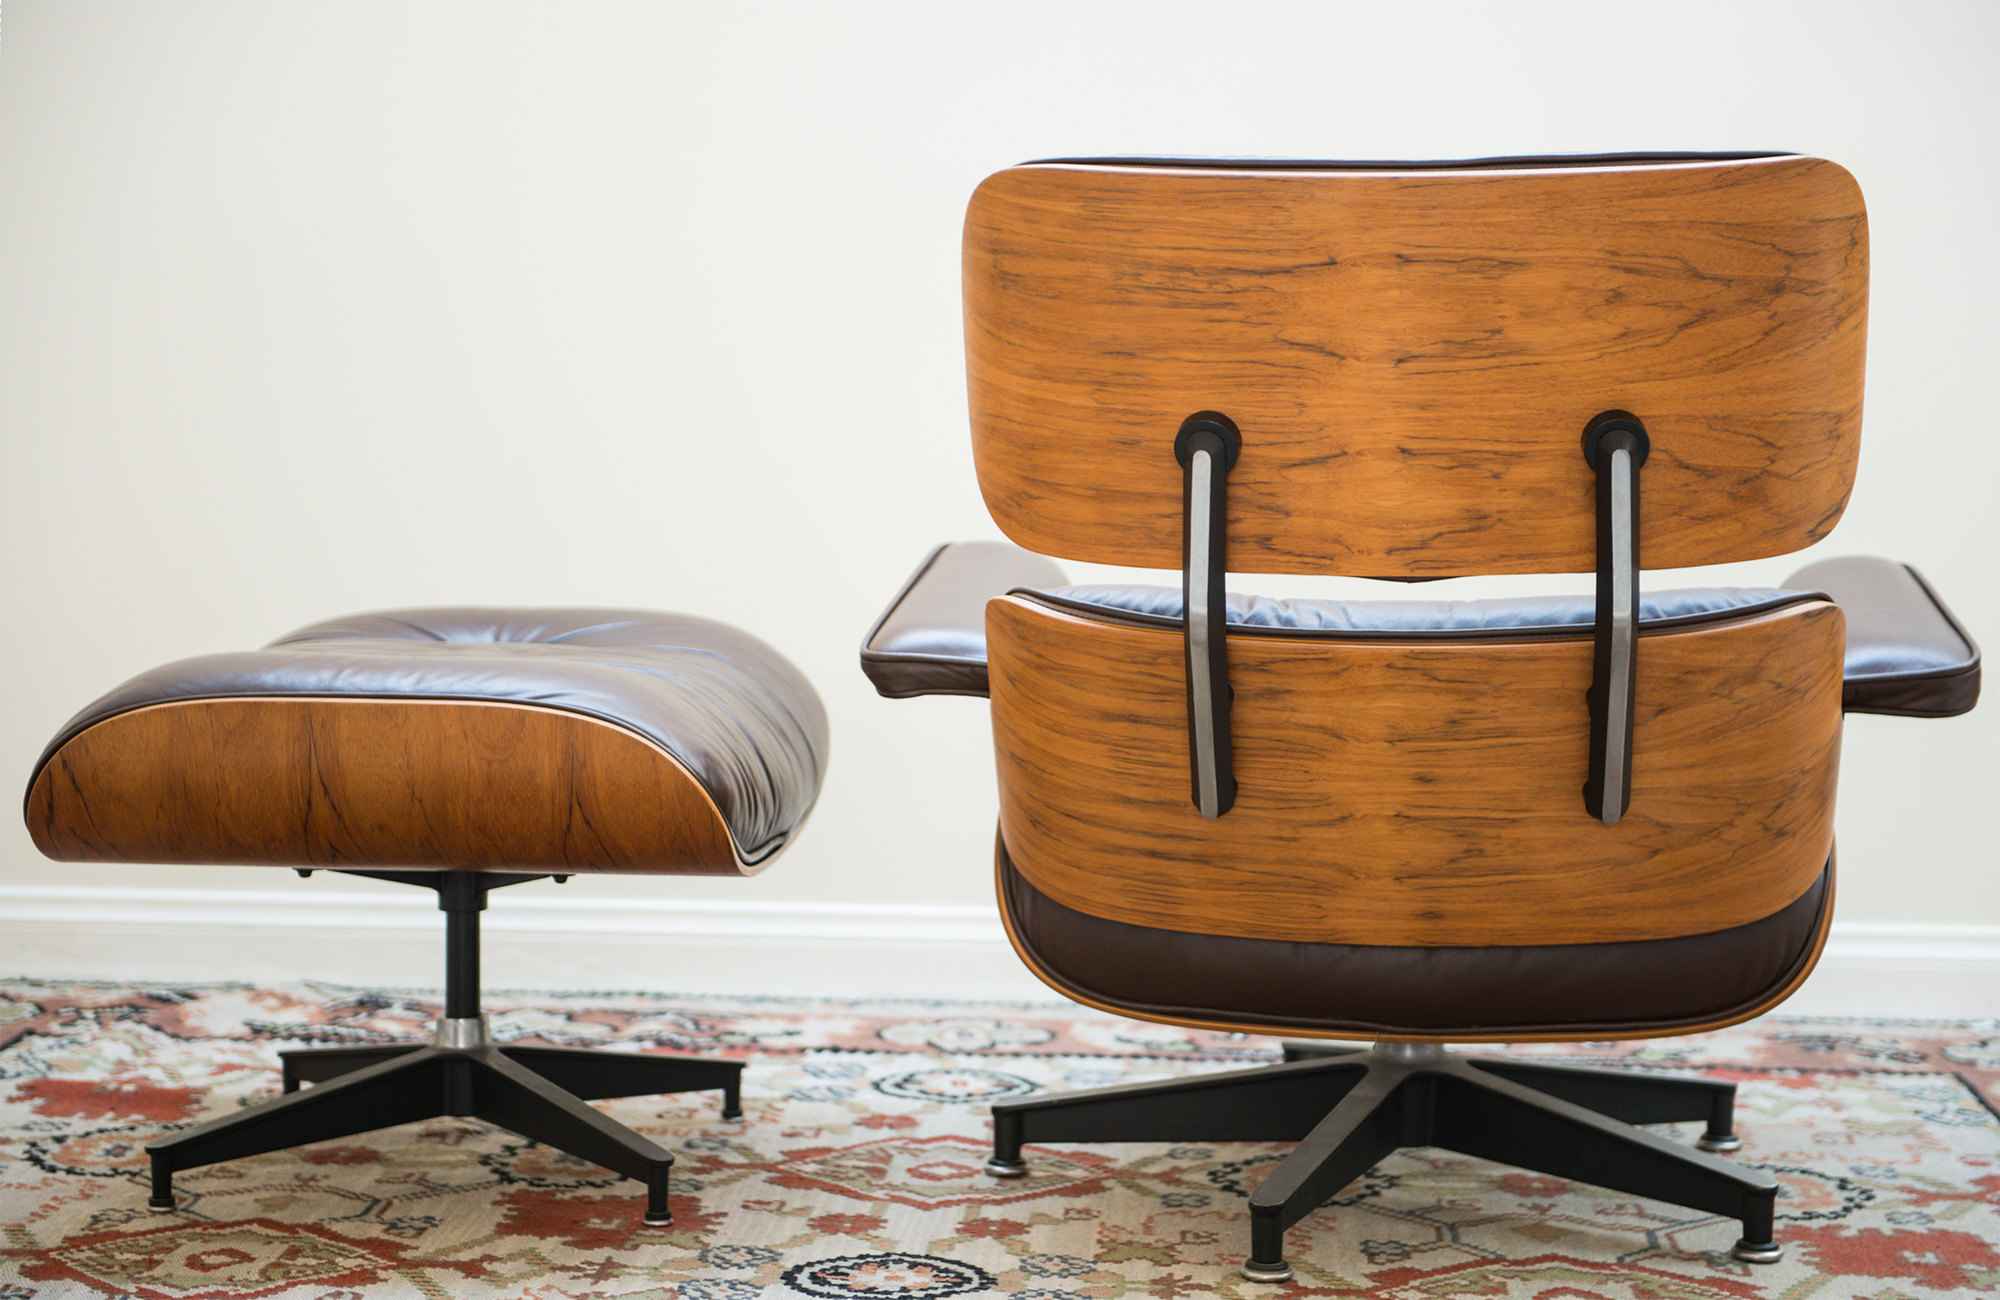 Merveilleux 1976 Vintage Herman Miller Eames Lounge Chair U0026 Ottoman For Sale   Image 5  Of 11